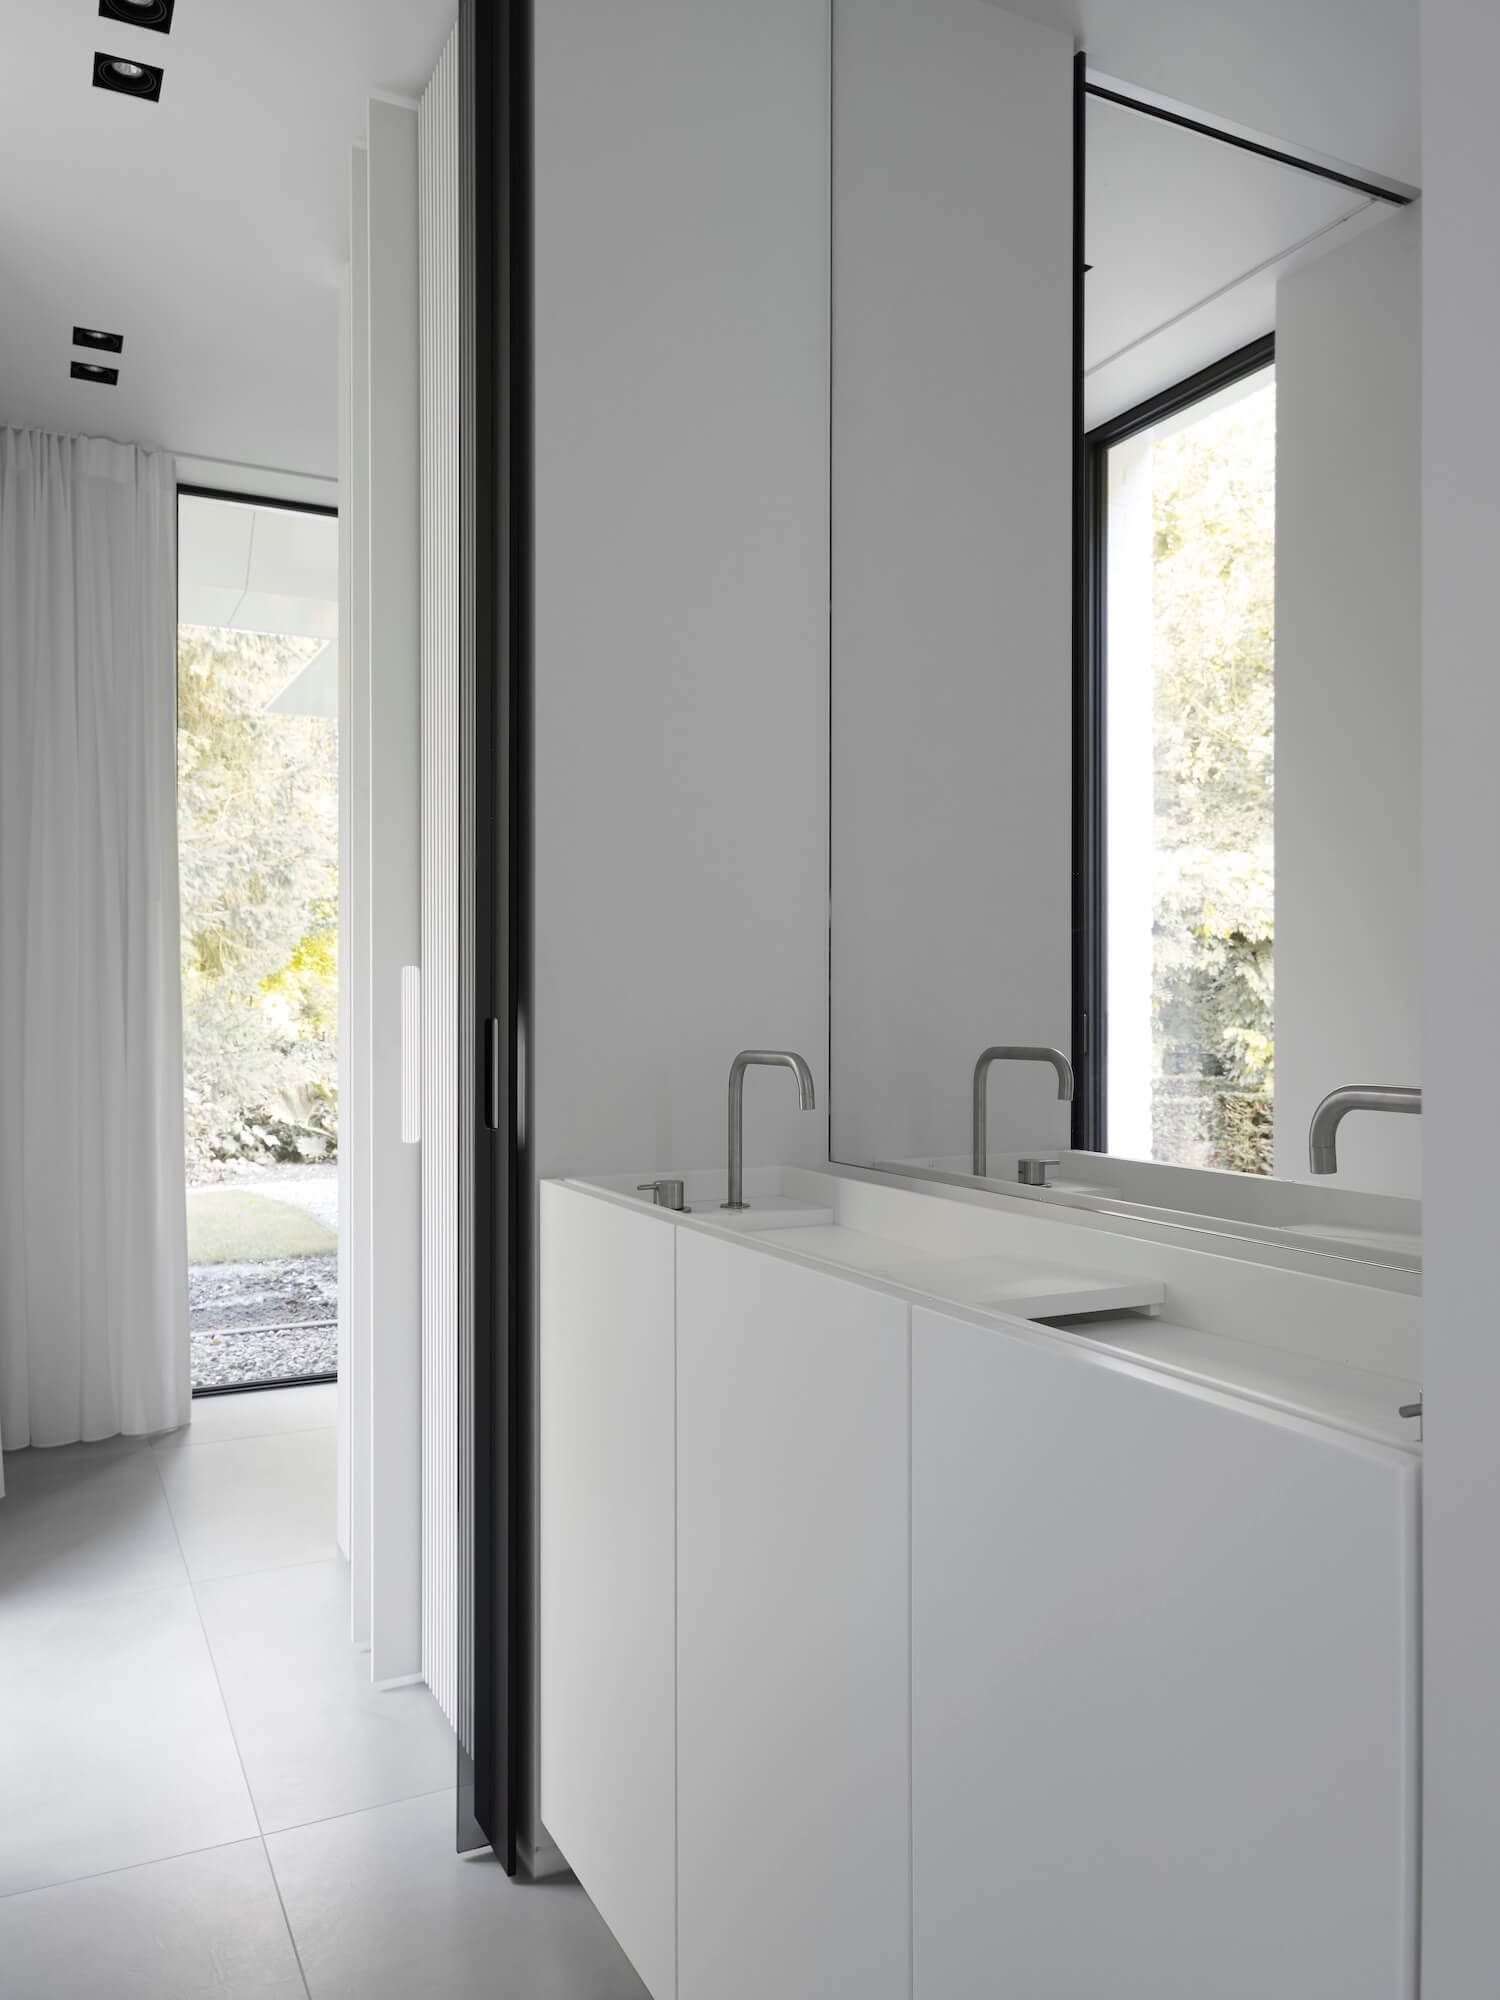 The Bright White House By Studio Niels Global Interiors Est Living White Bathroom Tiles Chic Home Decor House